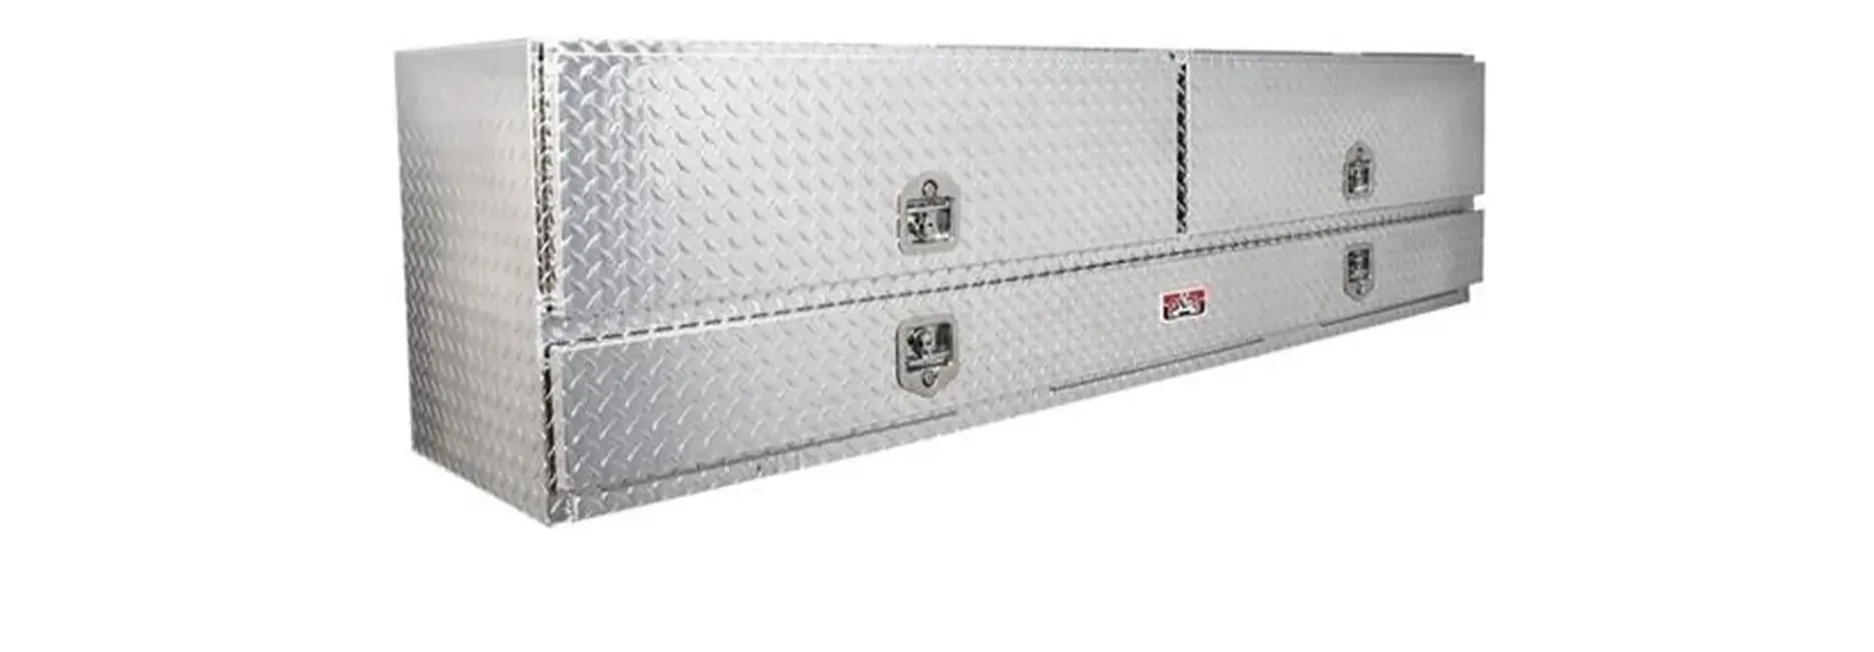 Brute Tool Boxes Flat or Stake Bed Truck TopSider High Capacity Toolbox With Doors